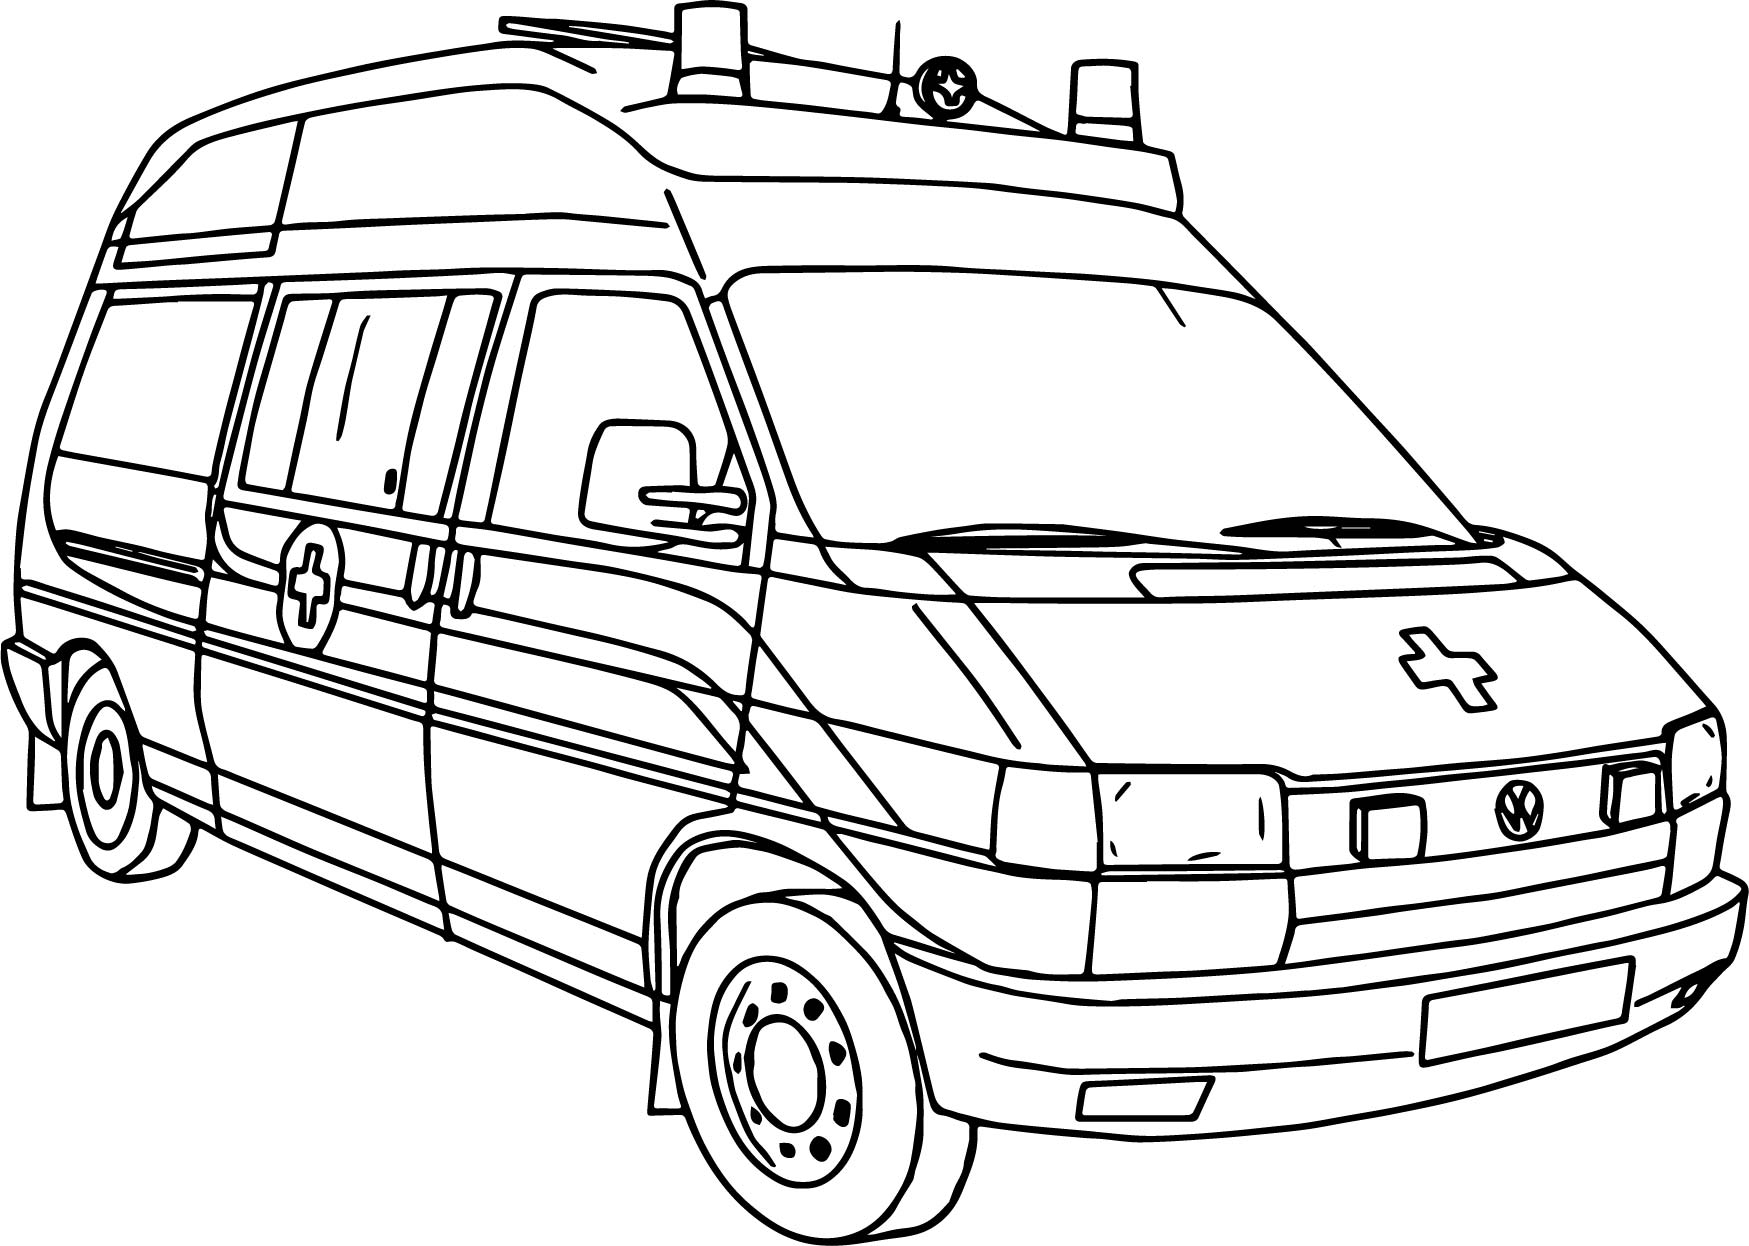 Ambulance Coloring Pages At Getdrawings Com Free For